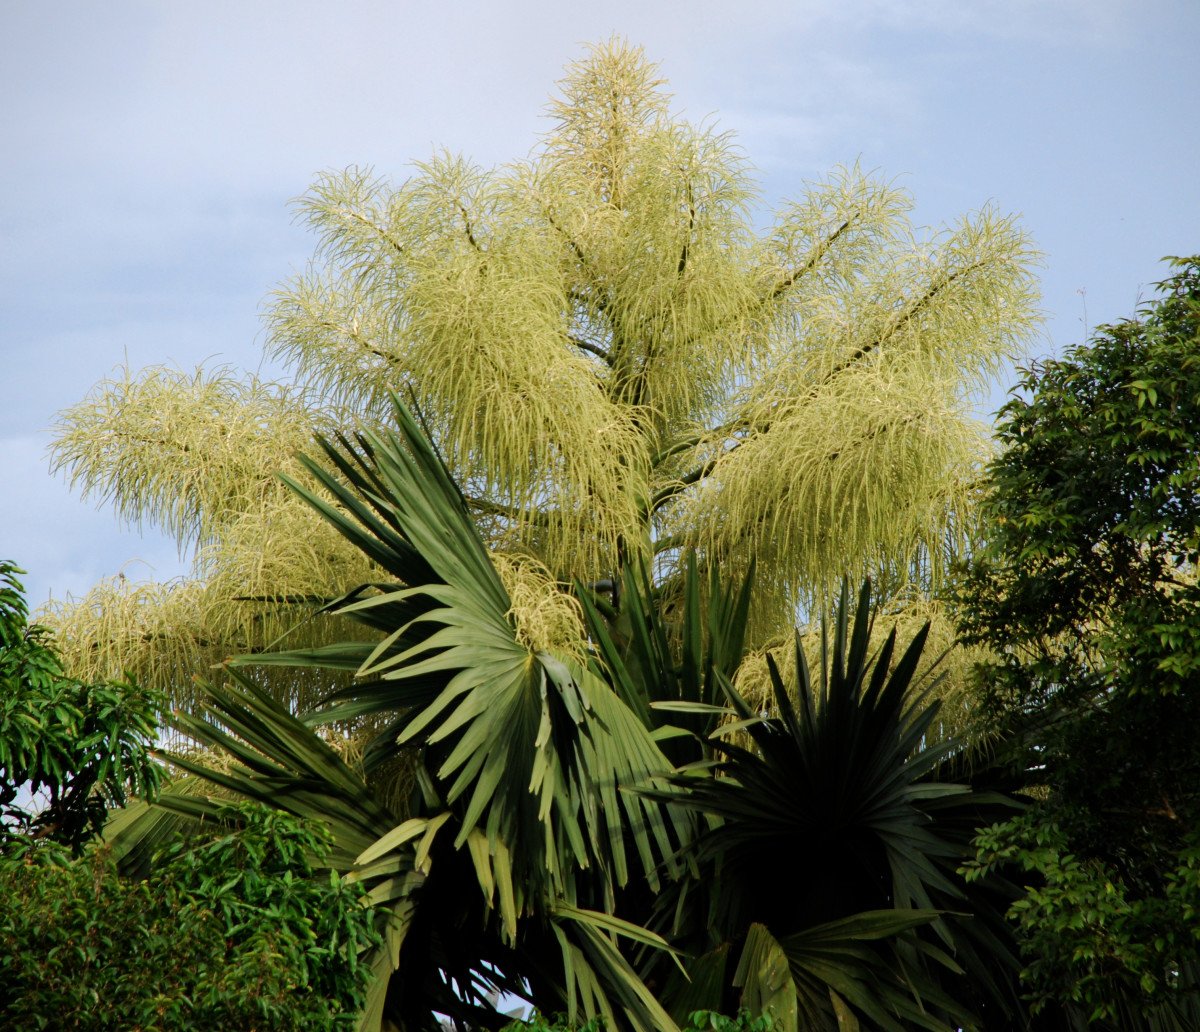 Rare flowering in a talipot palm - Corypha umbraculifera